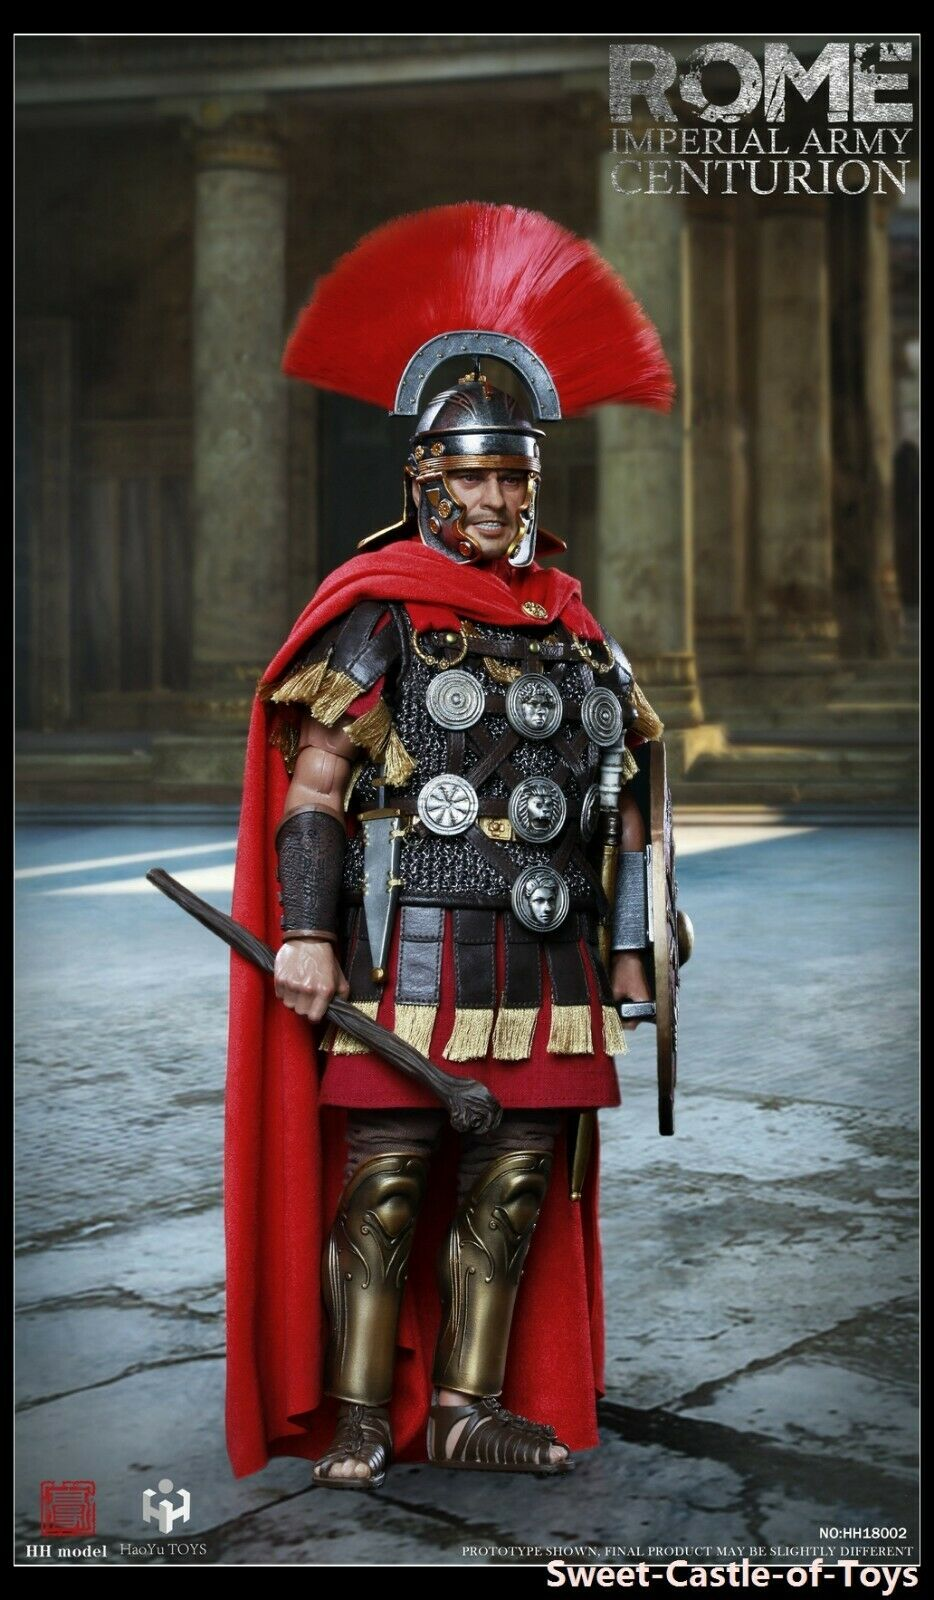 1 6 HH Model X HaoYuToys Action Figure - Rome Imperial Army Centurion HH18002